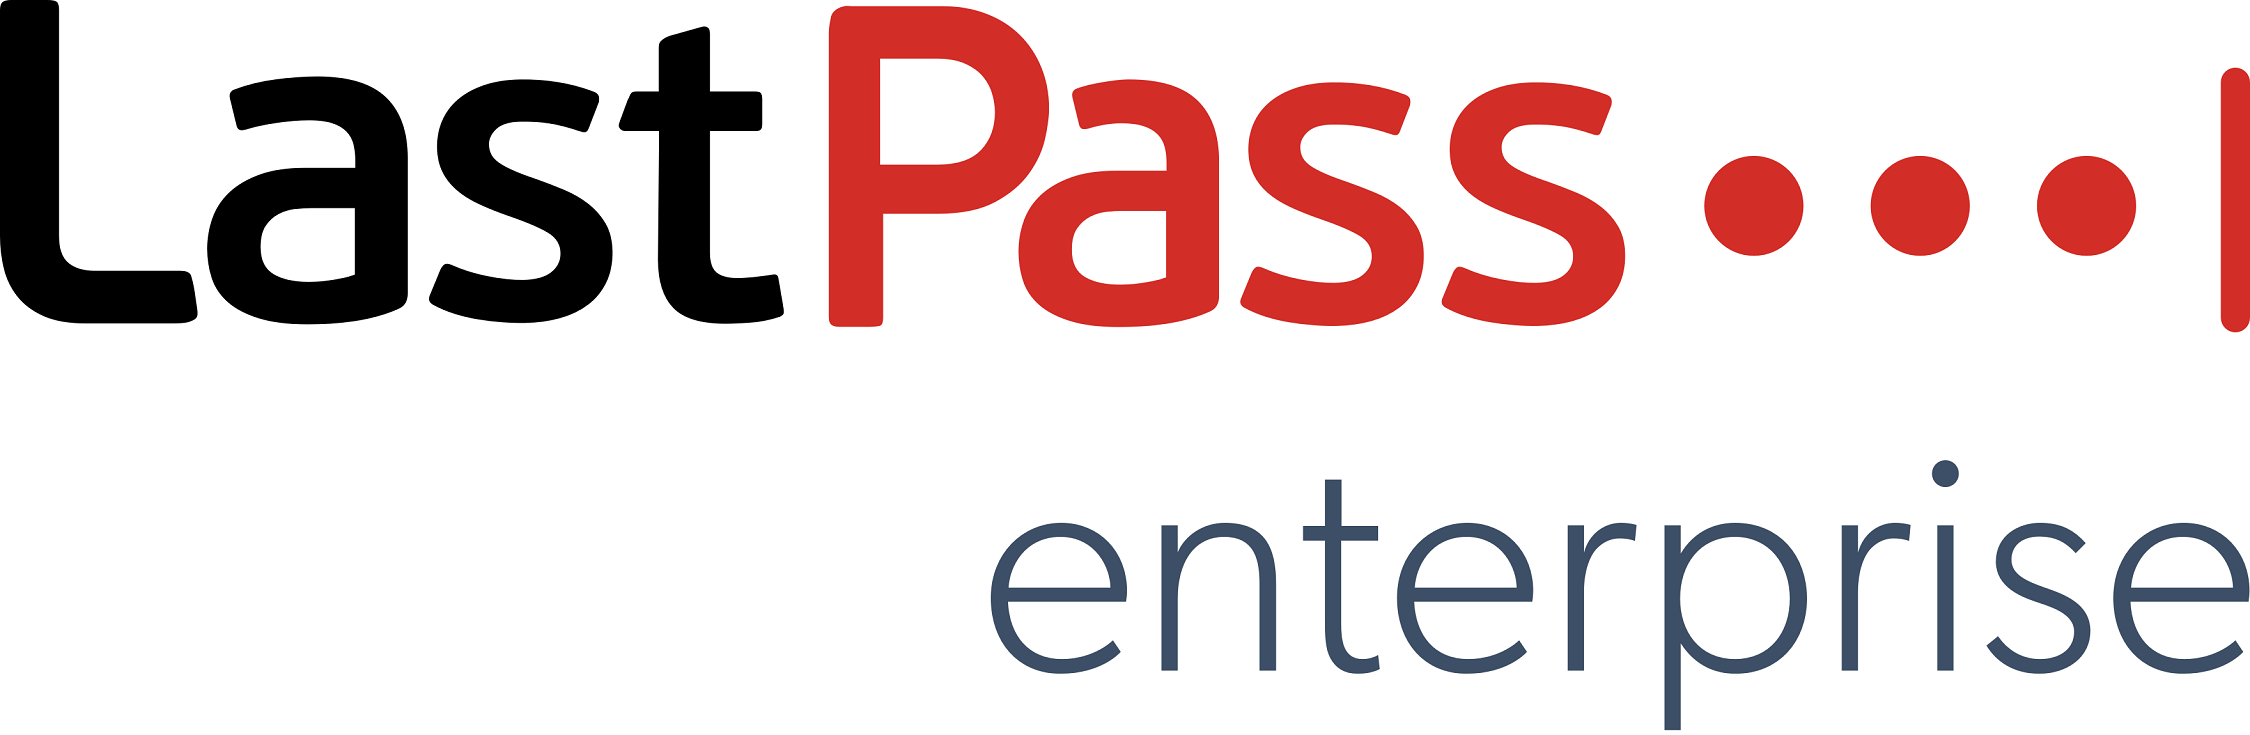 LastPass Enterprise Logo